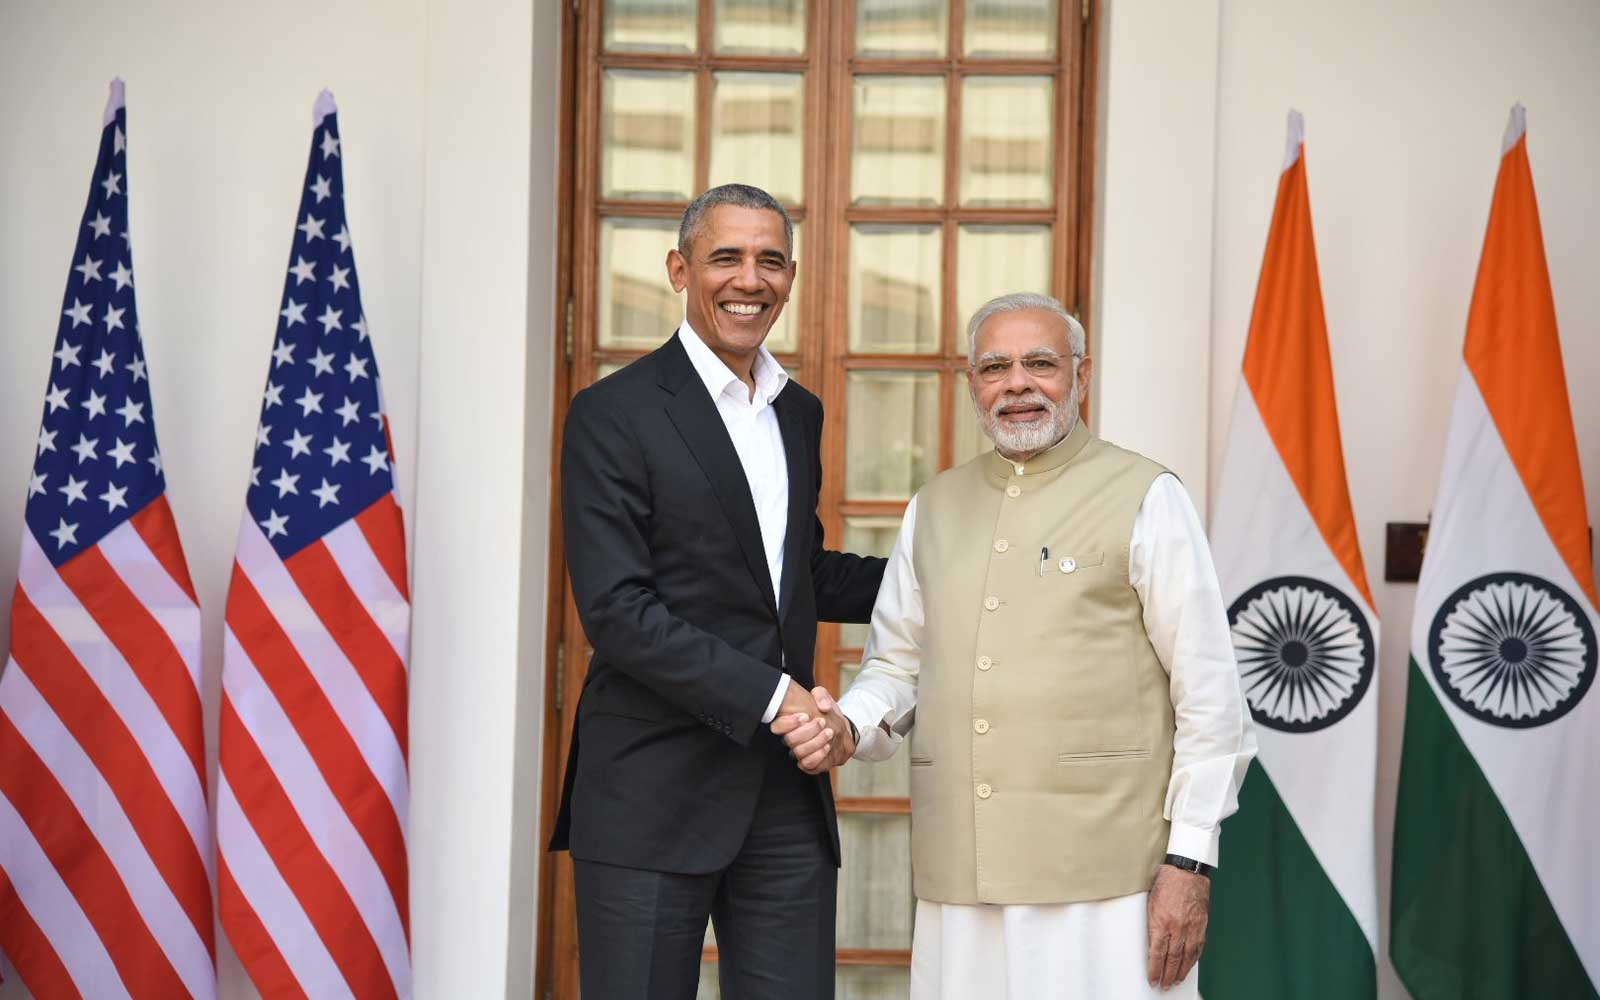 Barack Obama meets Prime Minister Narendra Modi in India